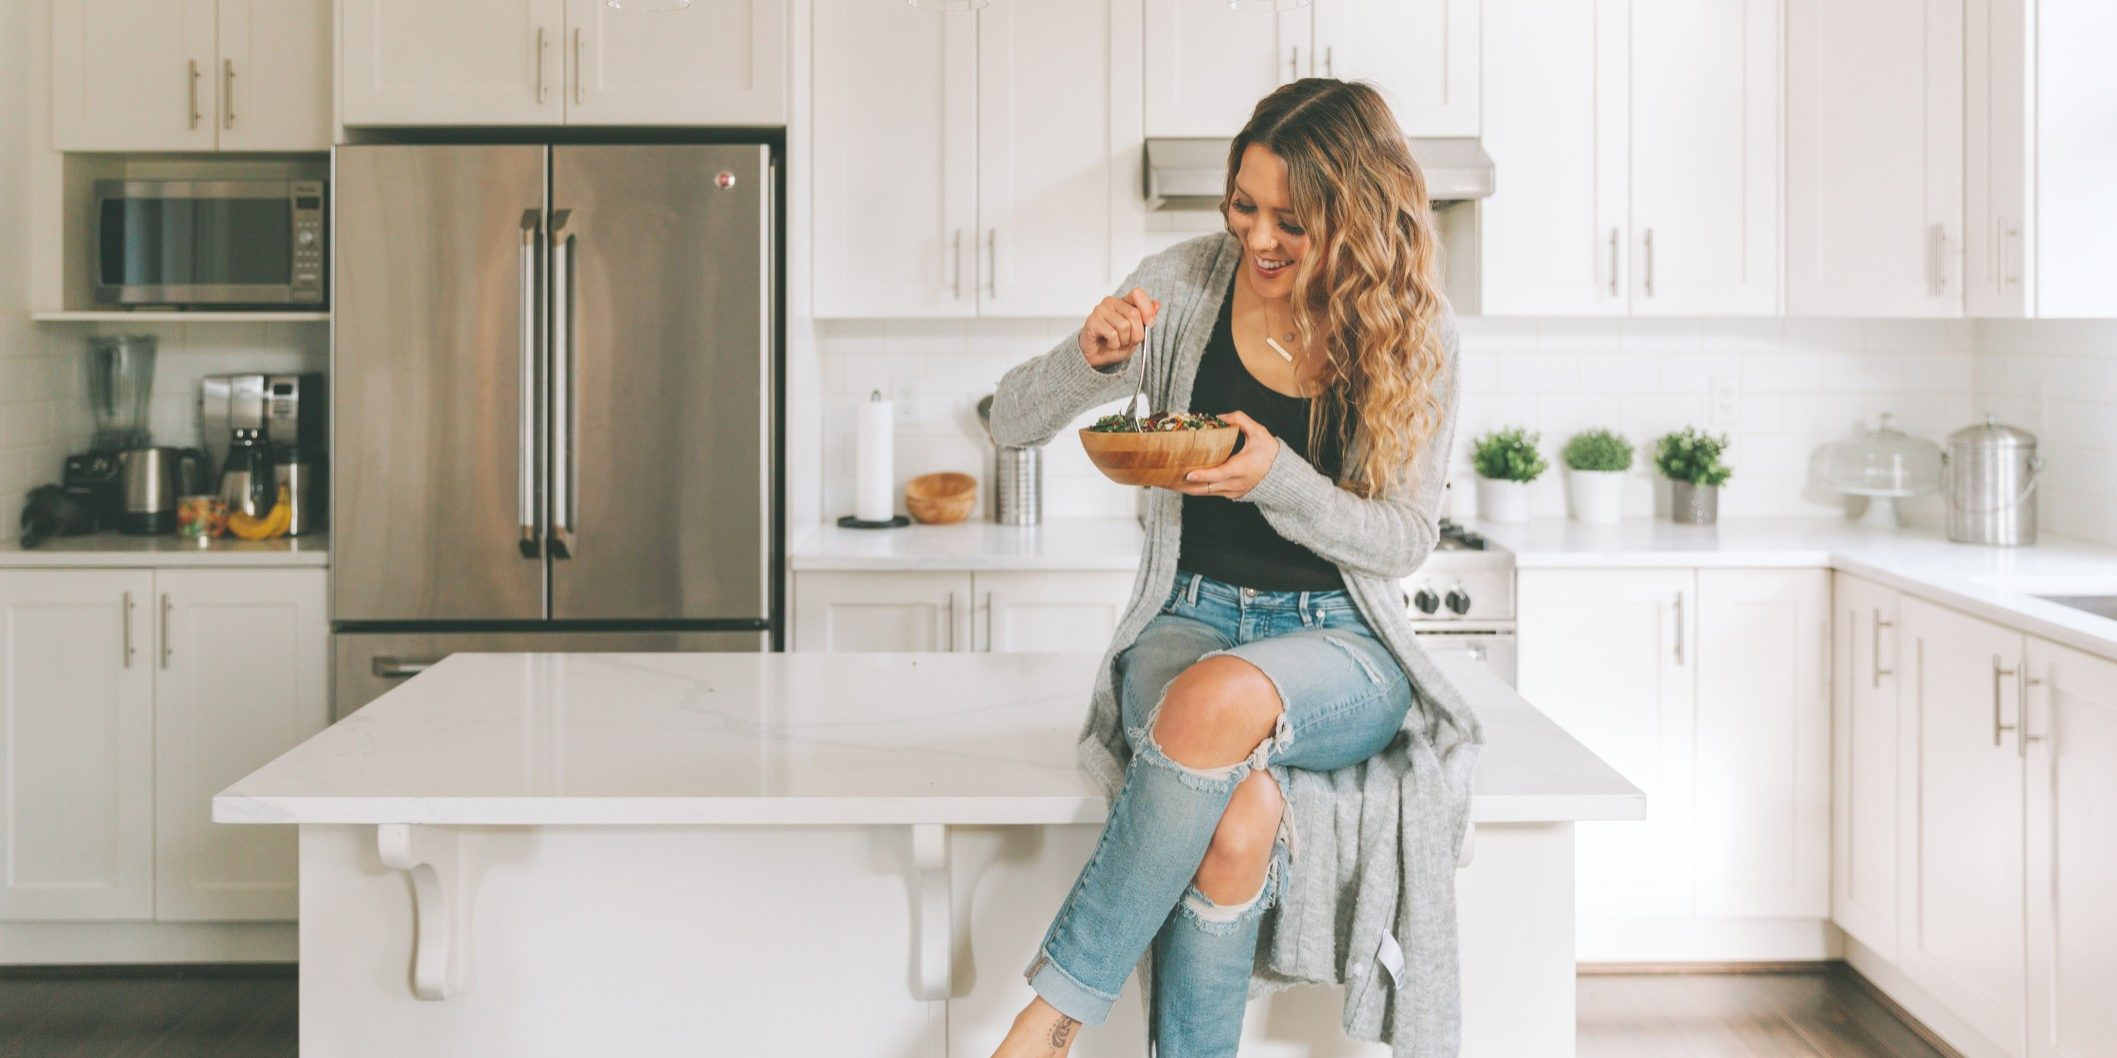 a-woman-eating-a-salad-while-sitting-on-the-kitchen-counter_t20_xR0peB